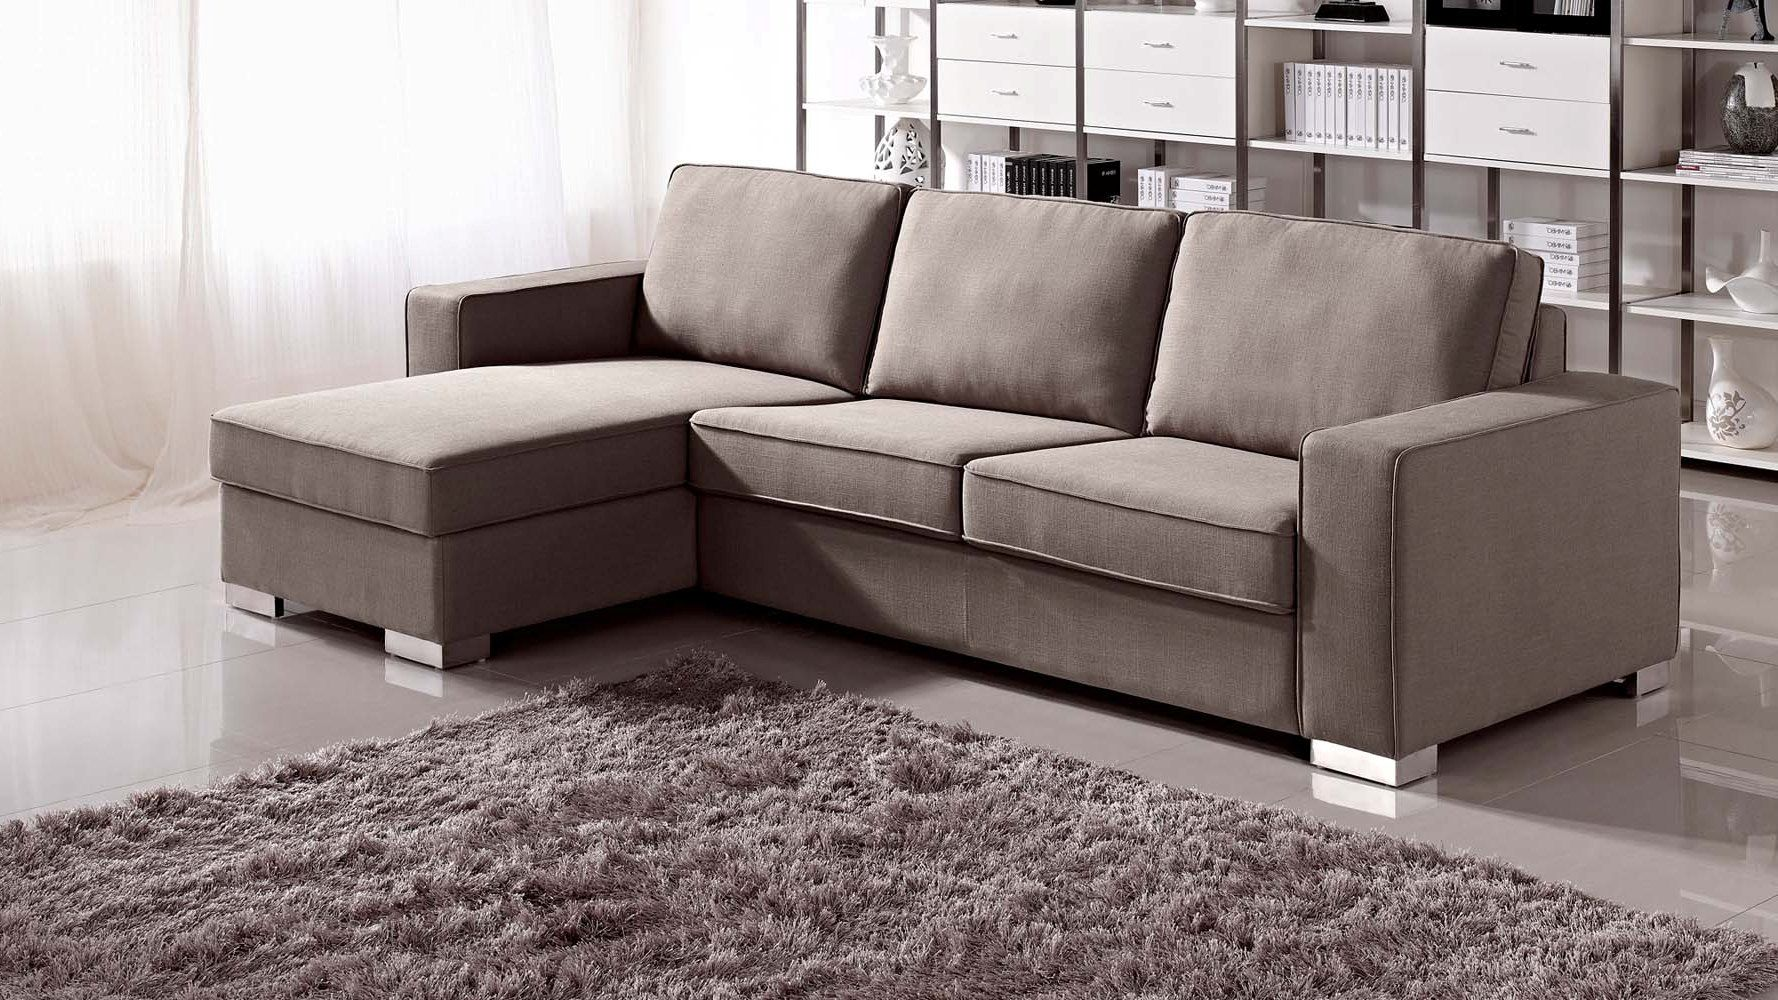 Small Sleeper Sofa Sectional | Http://tmidb.com | Pinterest | Small Sleeper  Sofa, Sleeper Sofas And Sleeper Couch